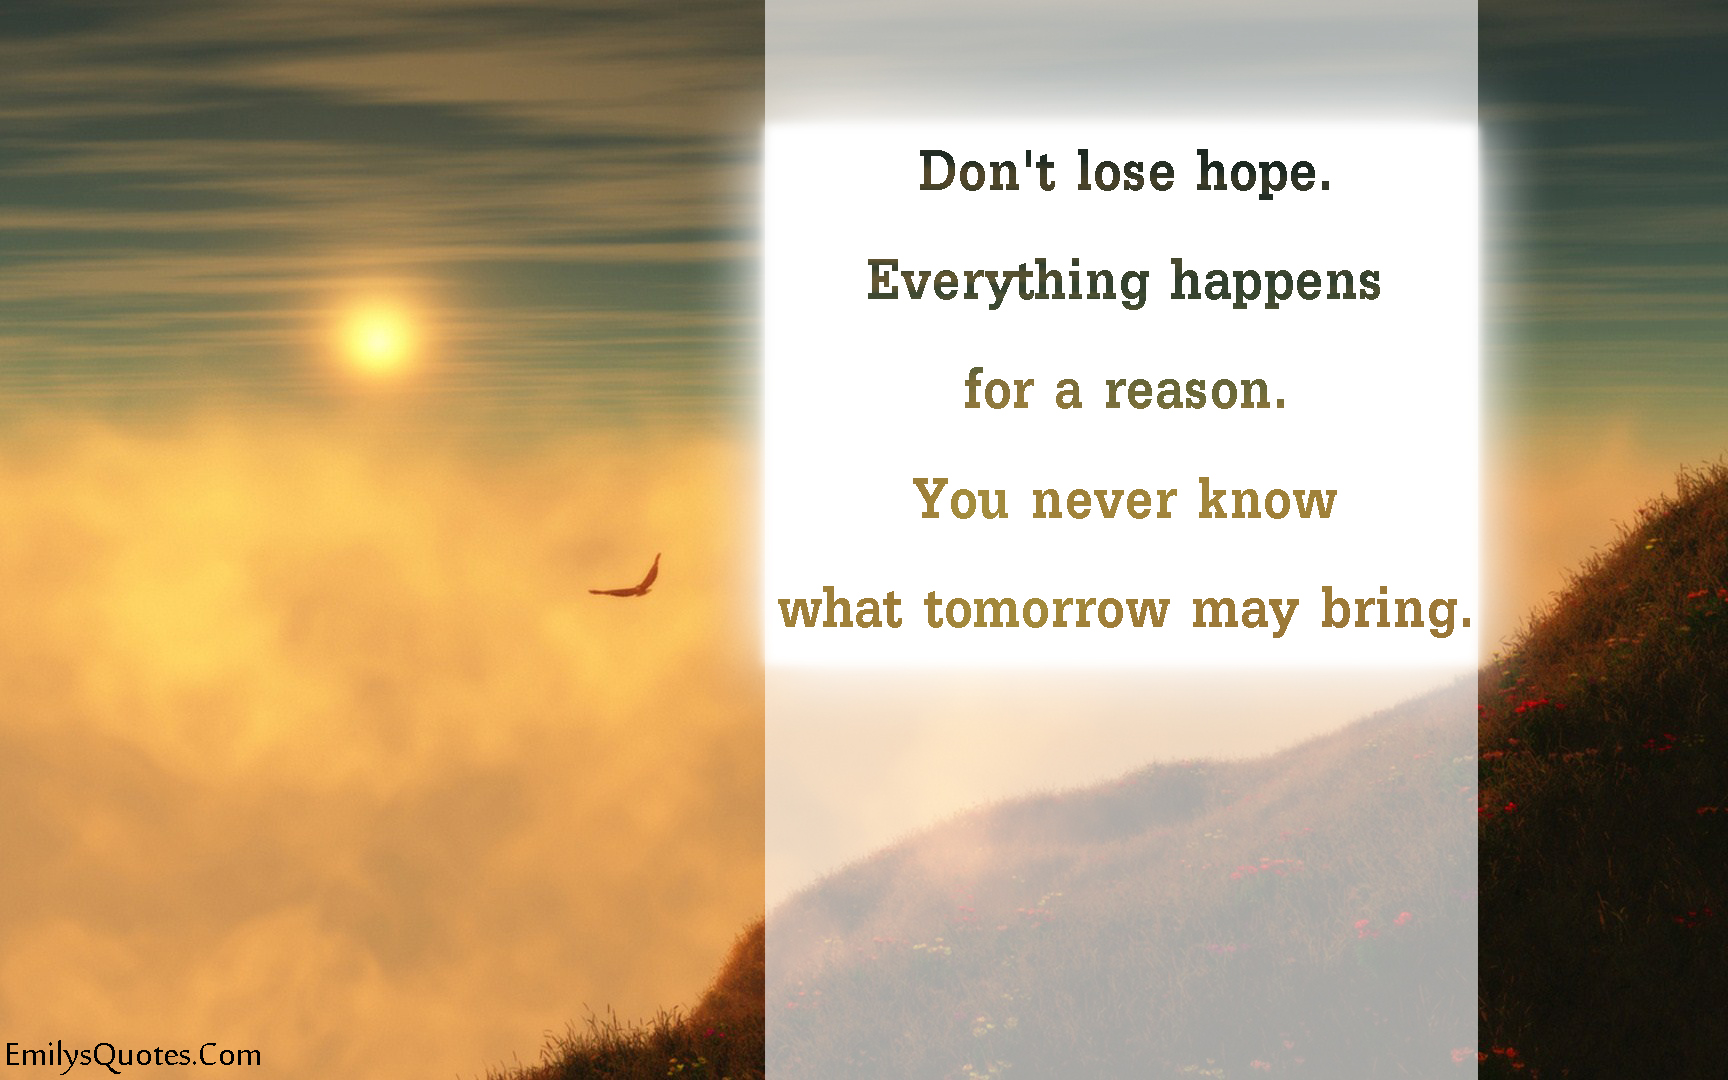 EmilysQuotes.Com - hope, reason, future, inspirational, positive, unknown